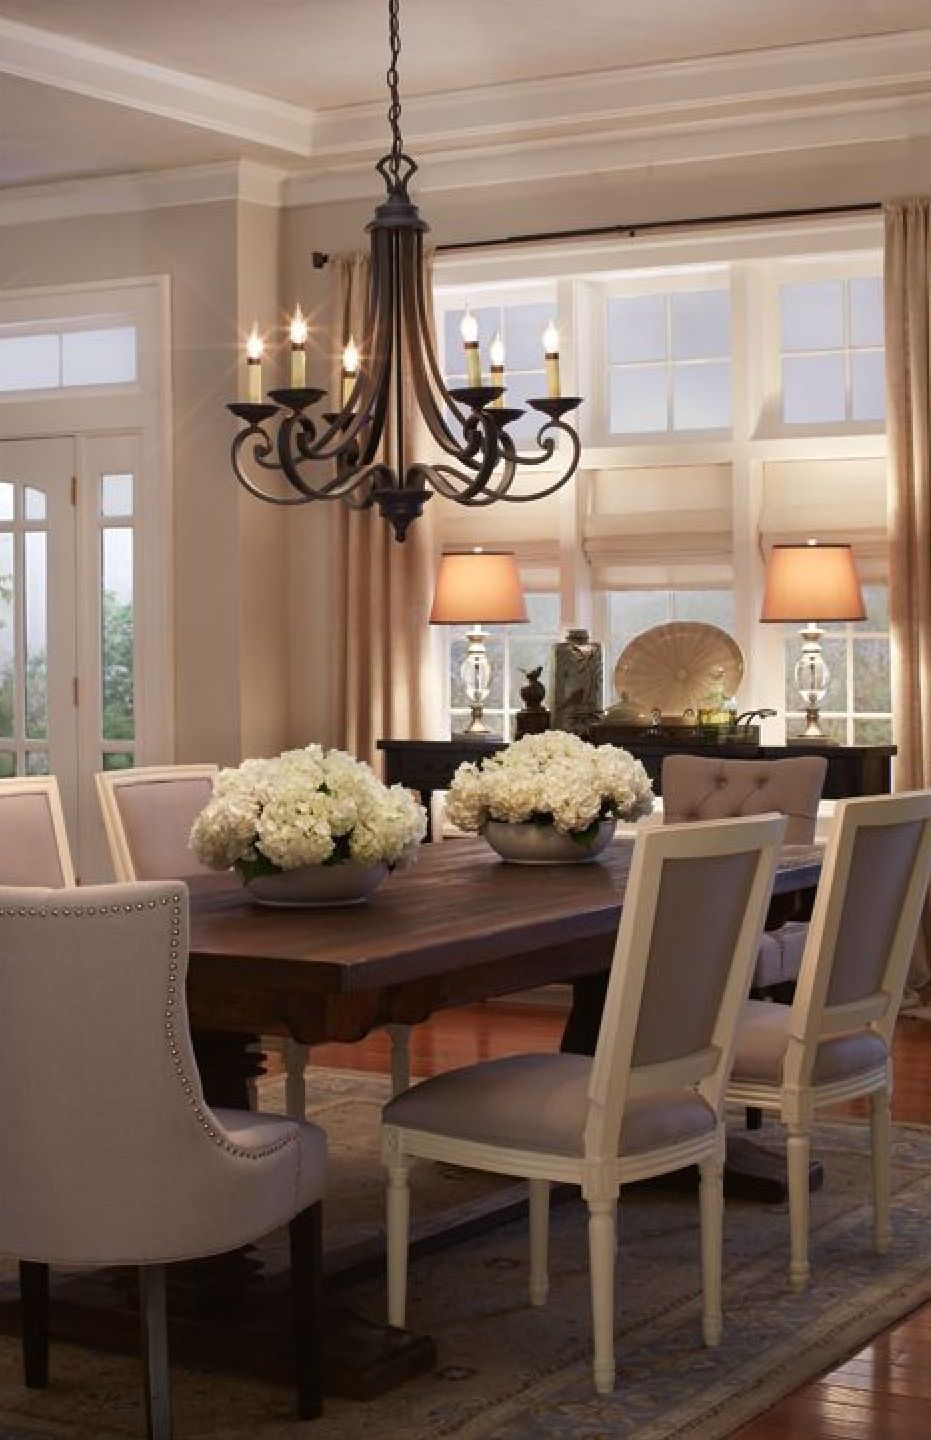 #diningroom Tables, Chairs, Chandeliers, Pendant Light, Ceiling Design,  Wallpaper, Mirrors, Window Treatments, Flooring, #interiordesign Banquette  Dining, ...